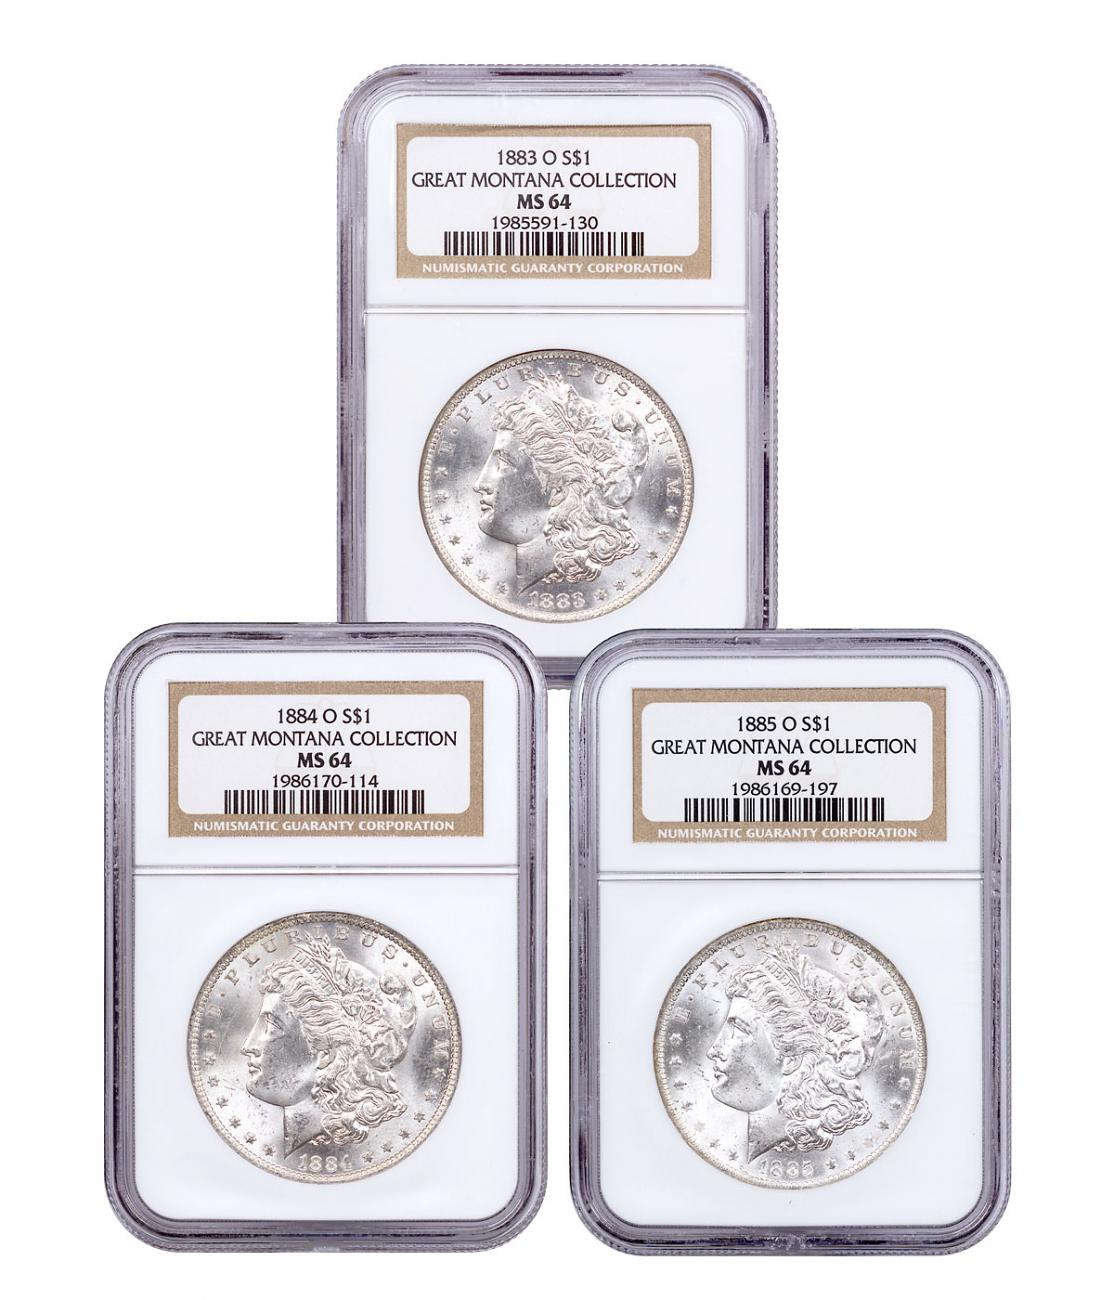 1883-1885-O Silver Great Montana Collection Morgan Dollar NGC MS64 Mammoth Mining Stock Certificate